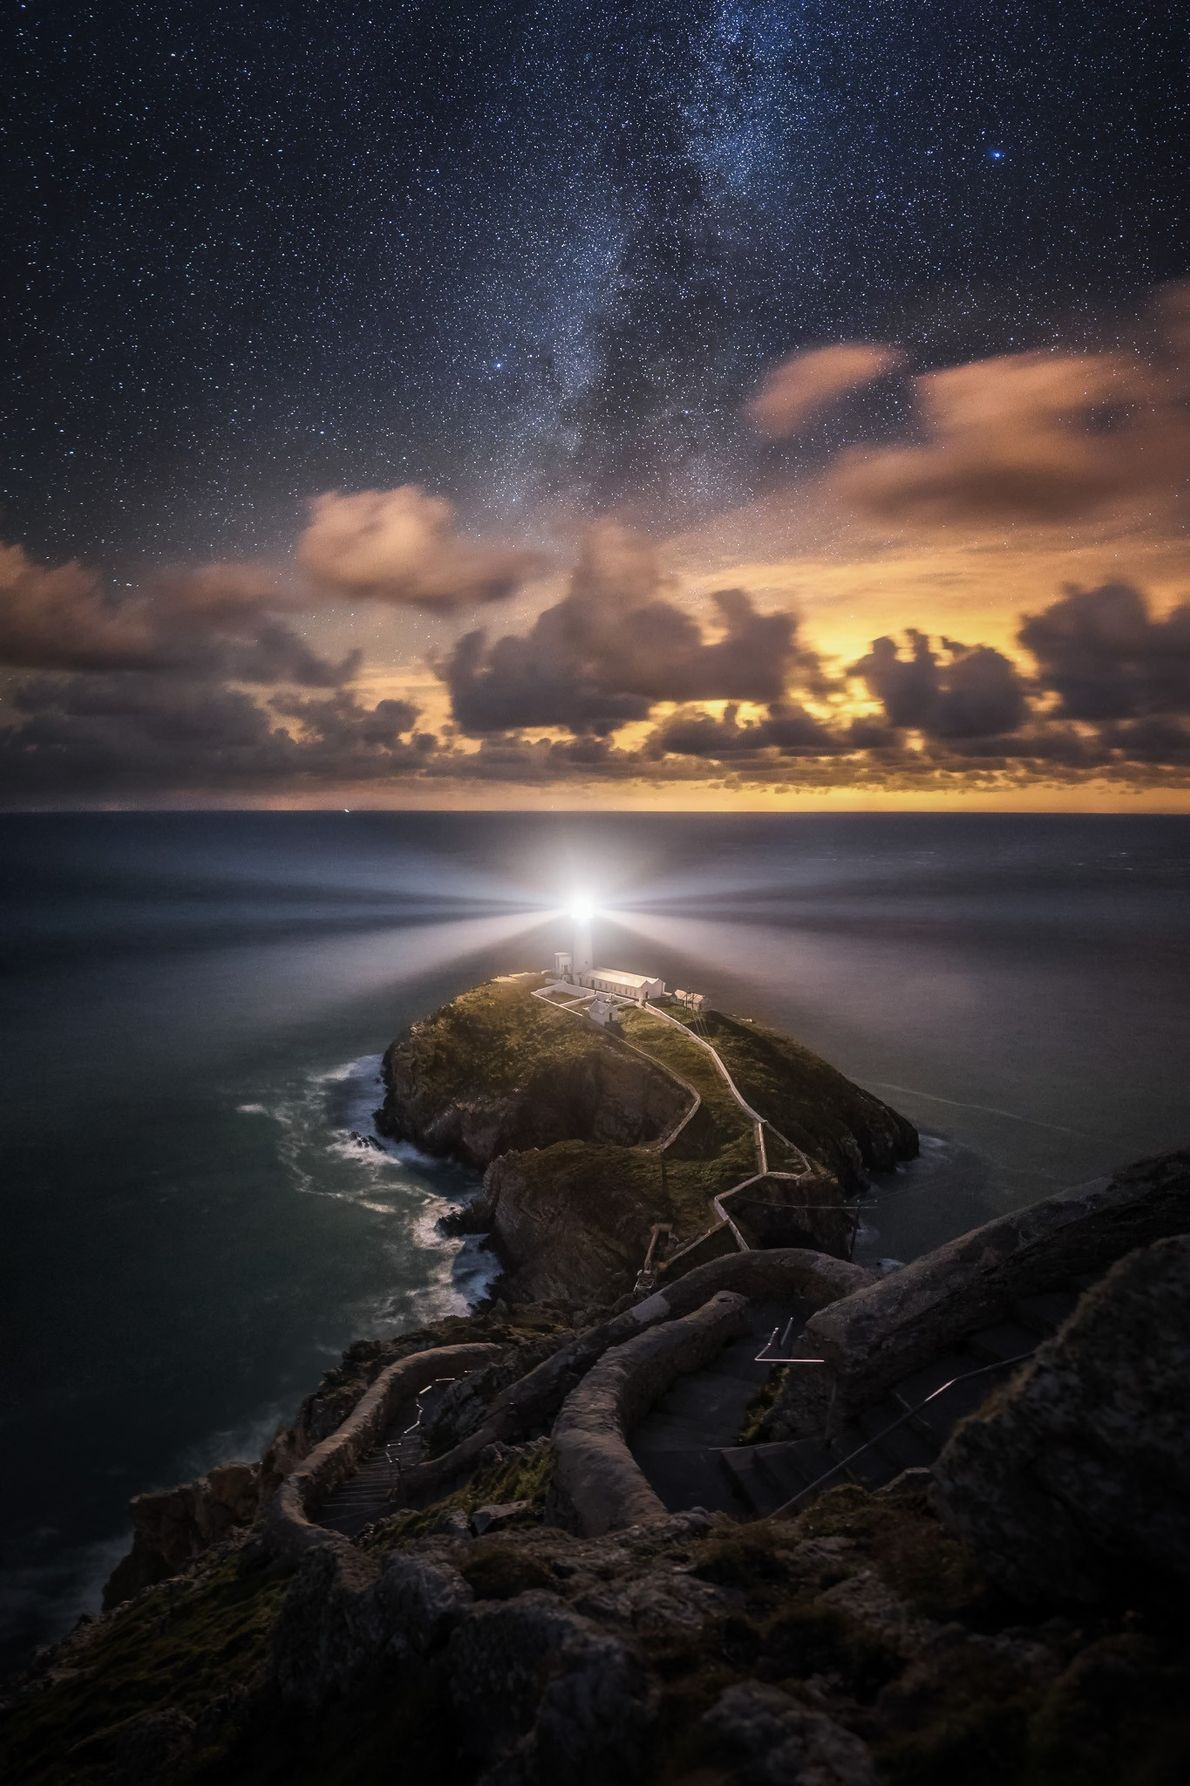 """Alyn Wallace: """"The Great Rift of the Milky Way extends above South Stack lighthouse on Anglesey. ..."""